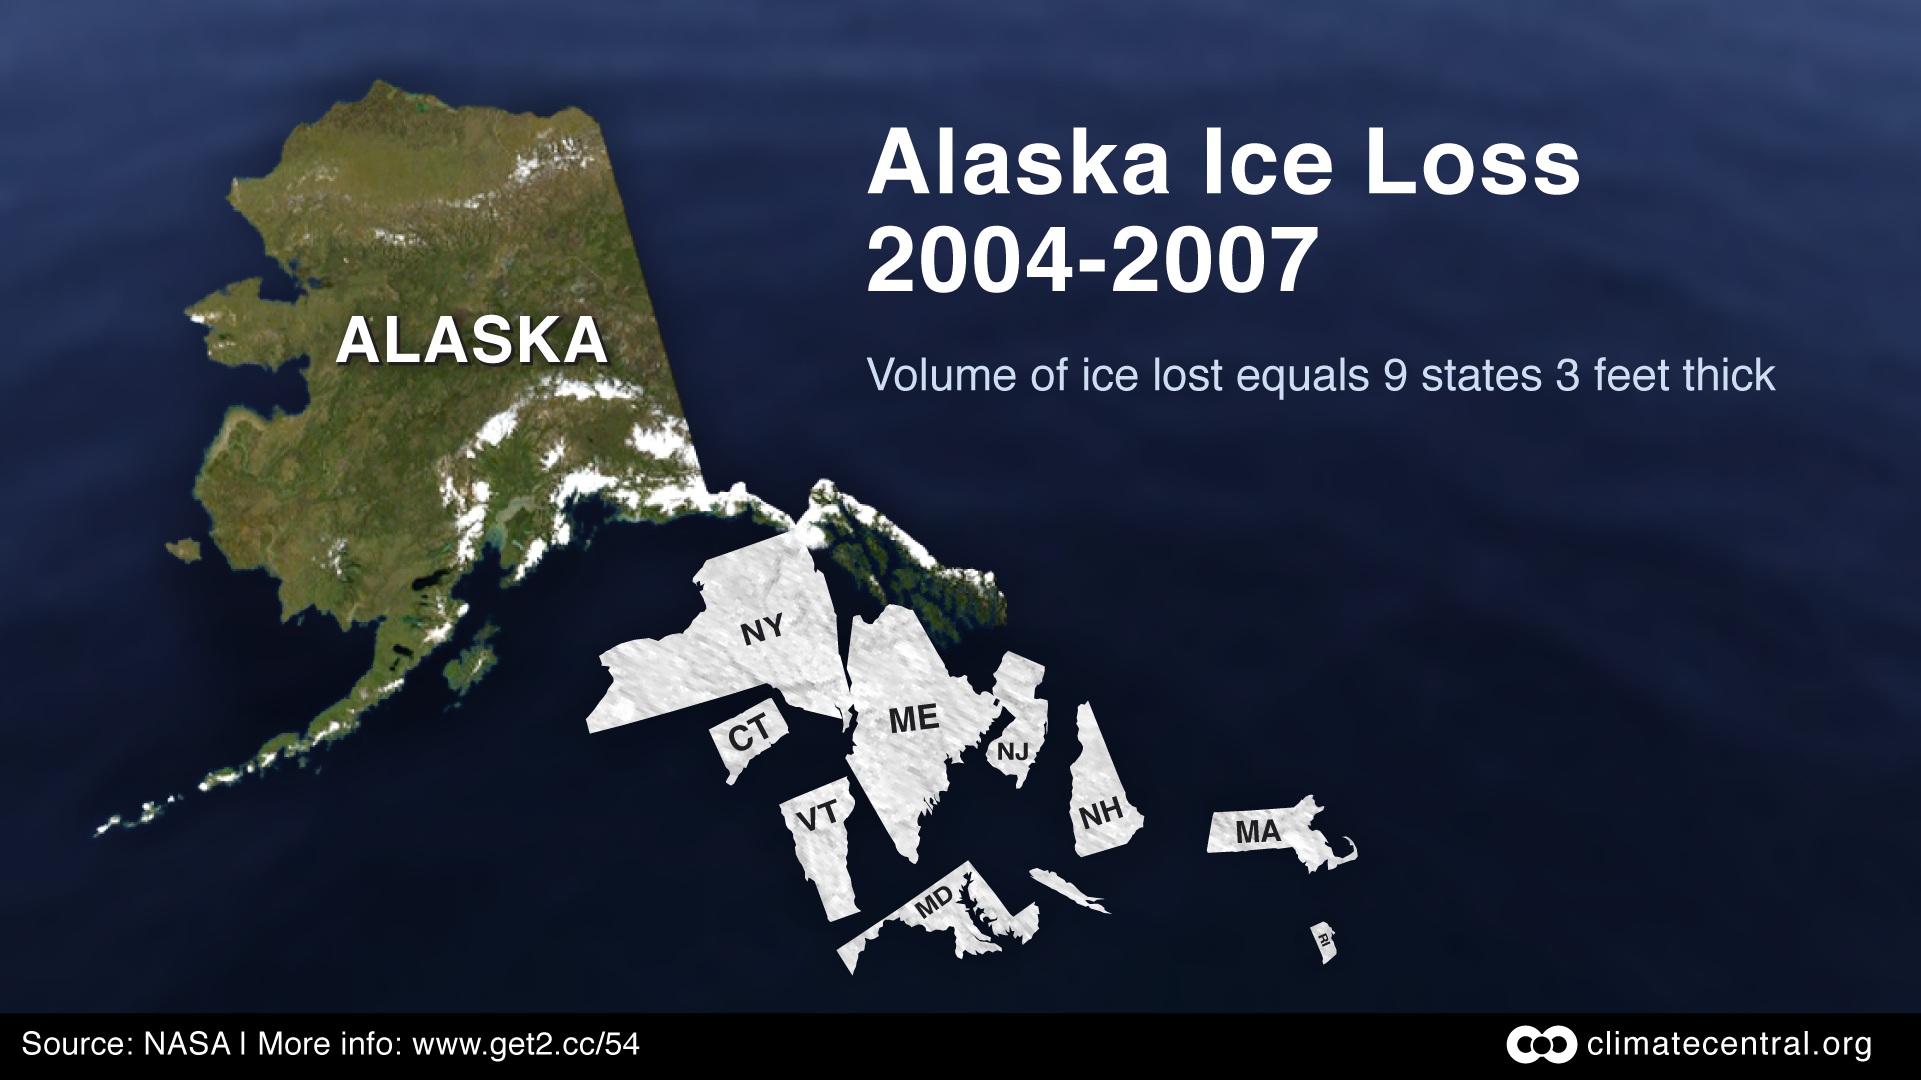 Alaska Total Ice Loss 2004-07